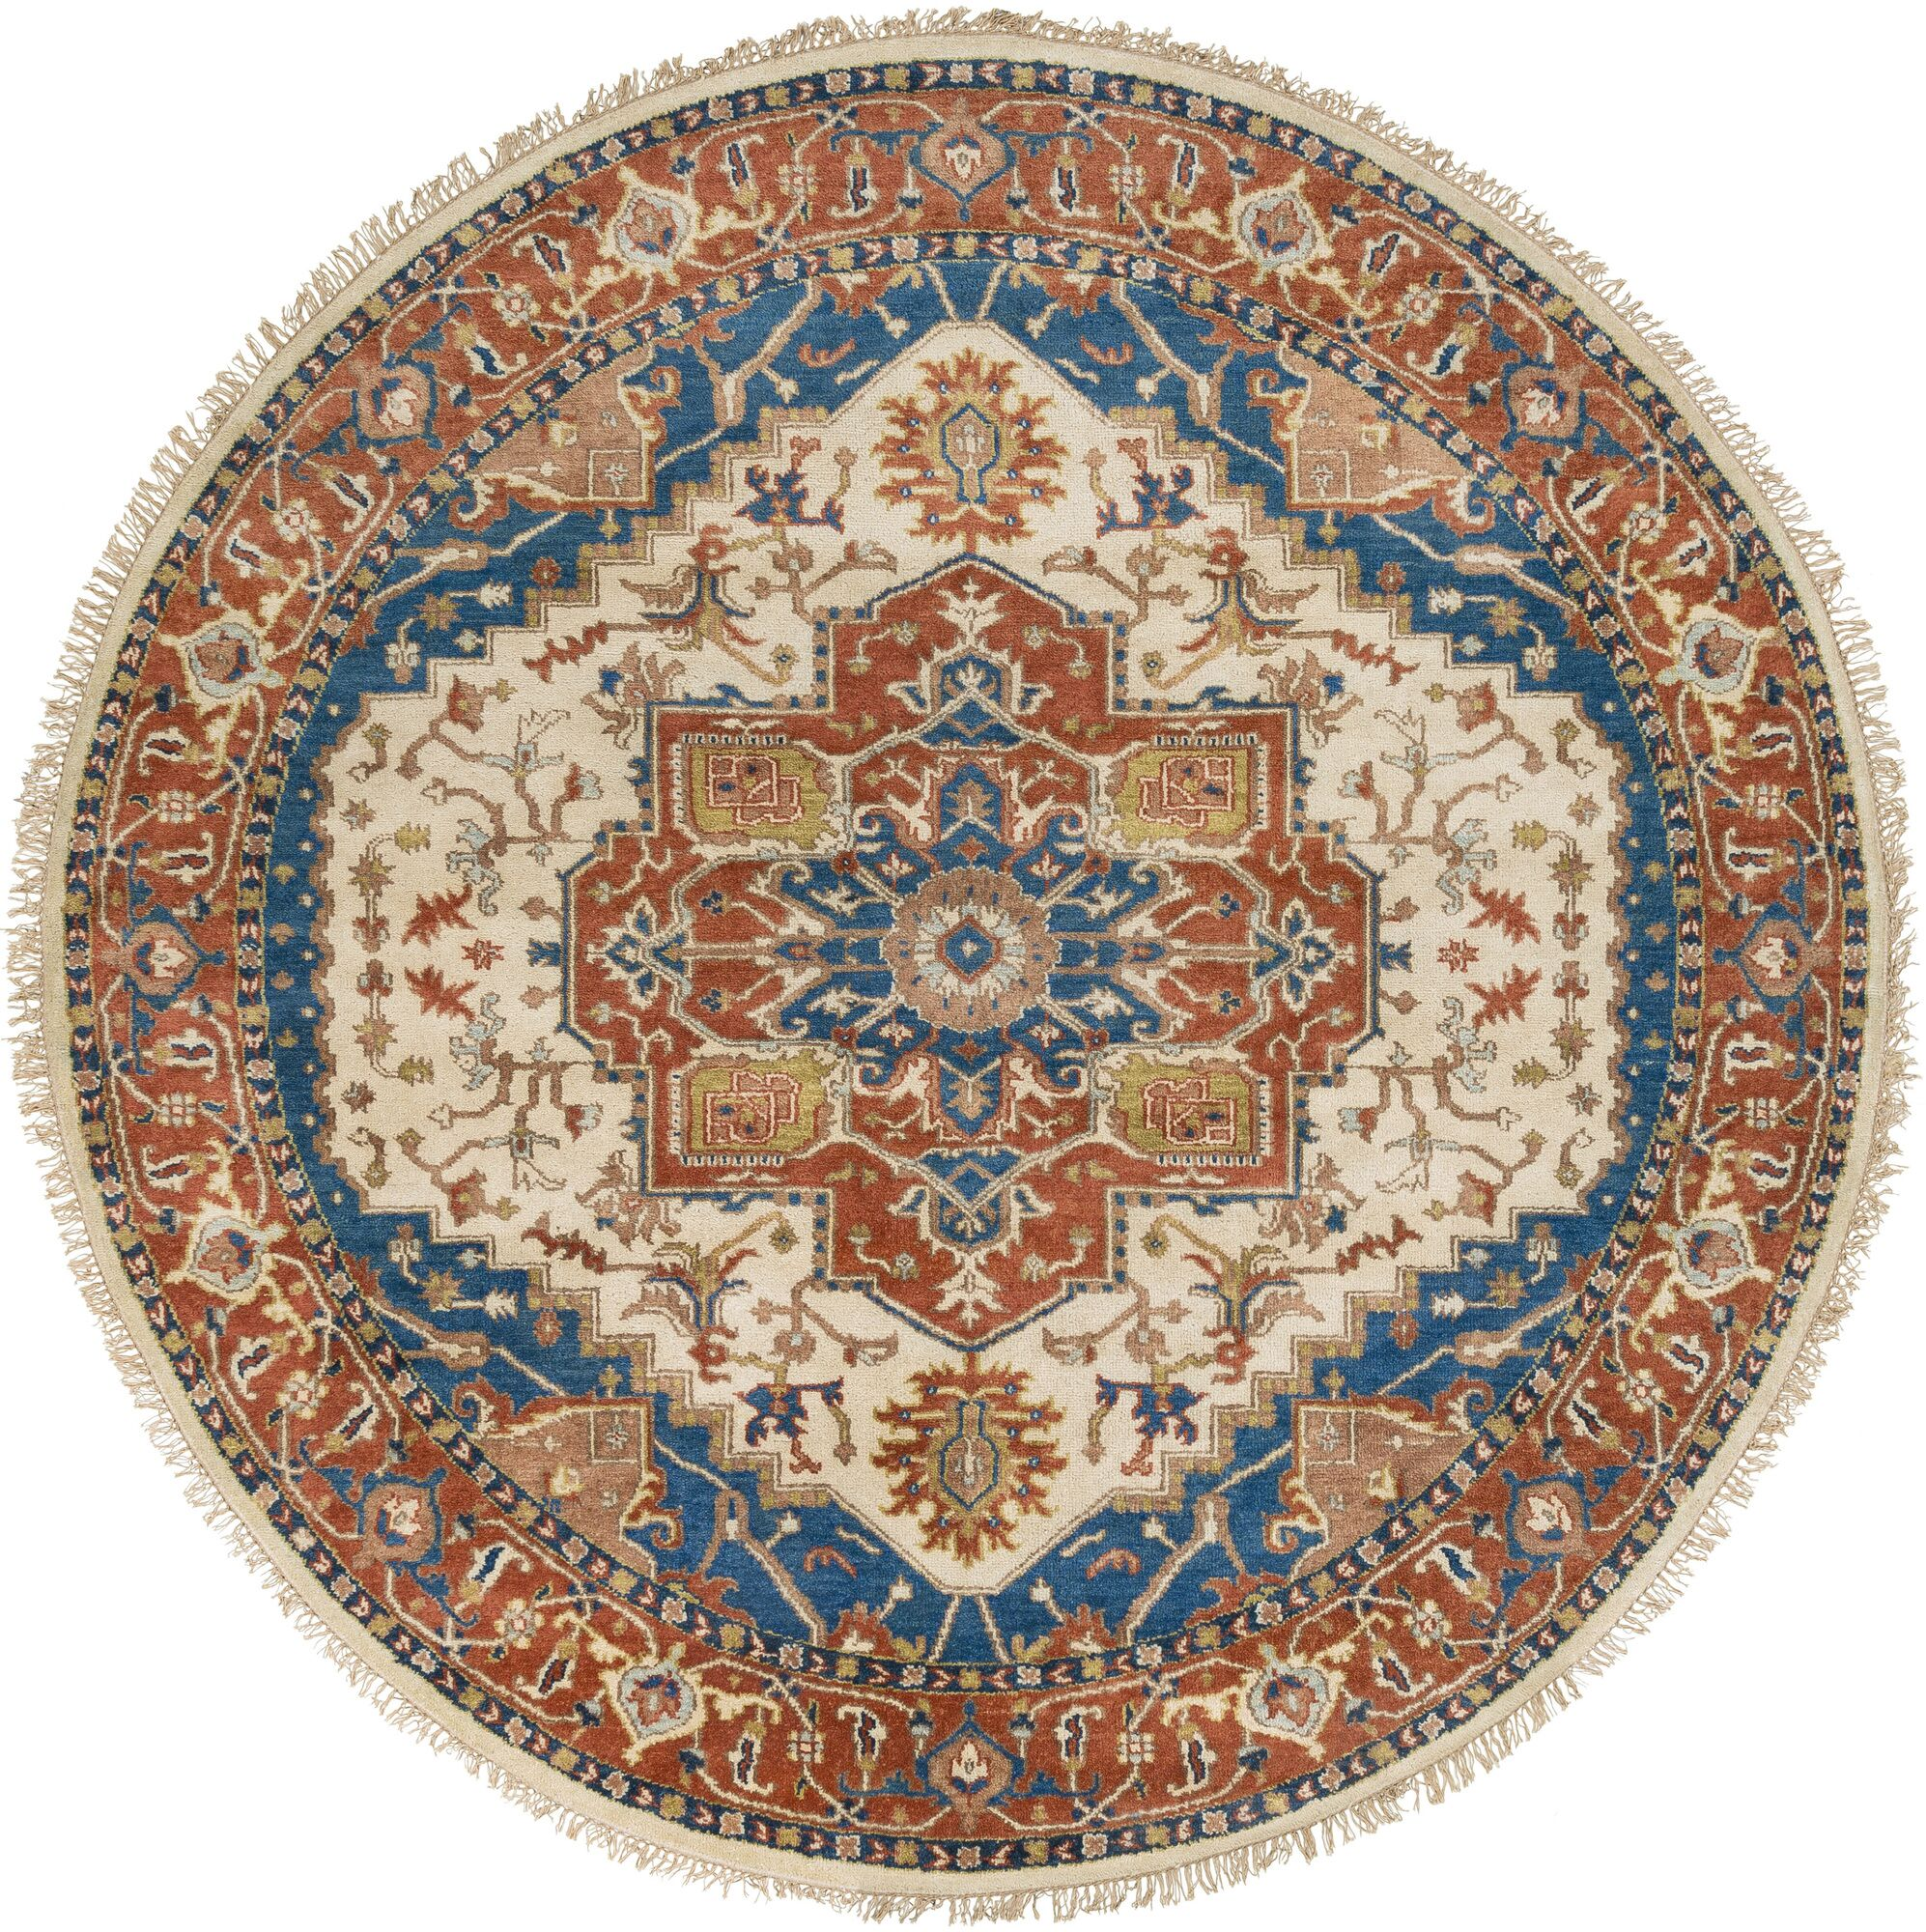 Langham Hand Knotted Wool Burnt Orange/Sky Blue Area Rug Rug Size: Round 8'